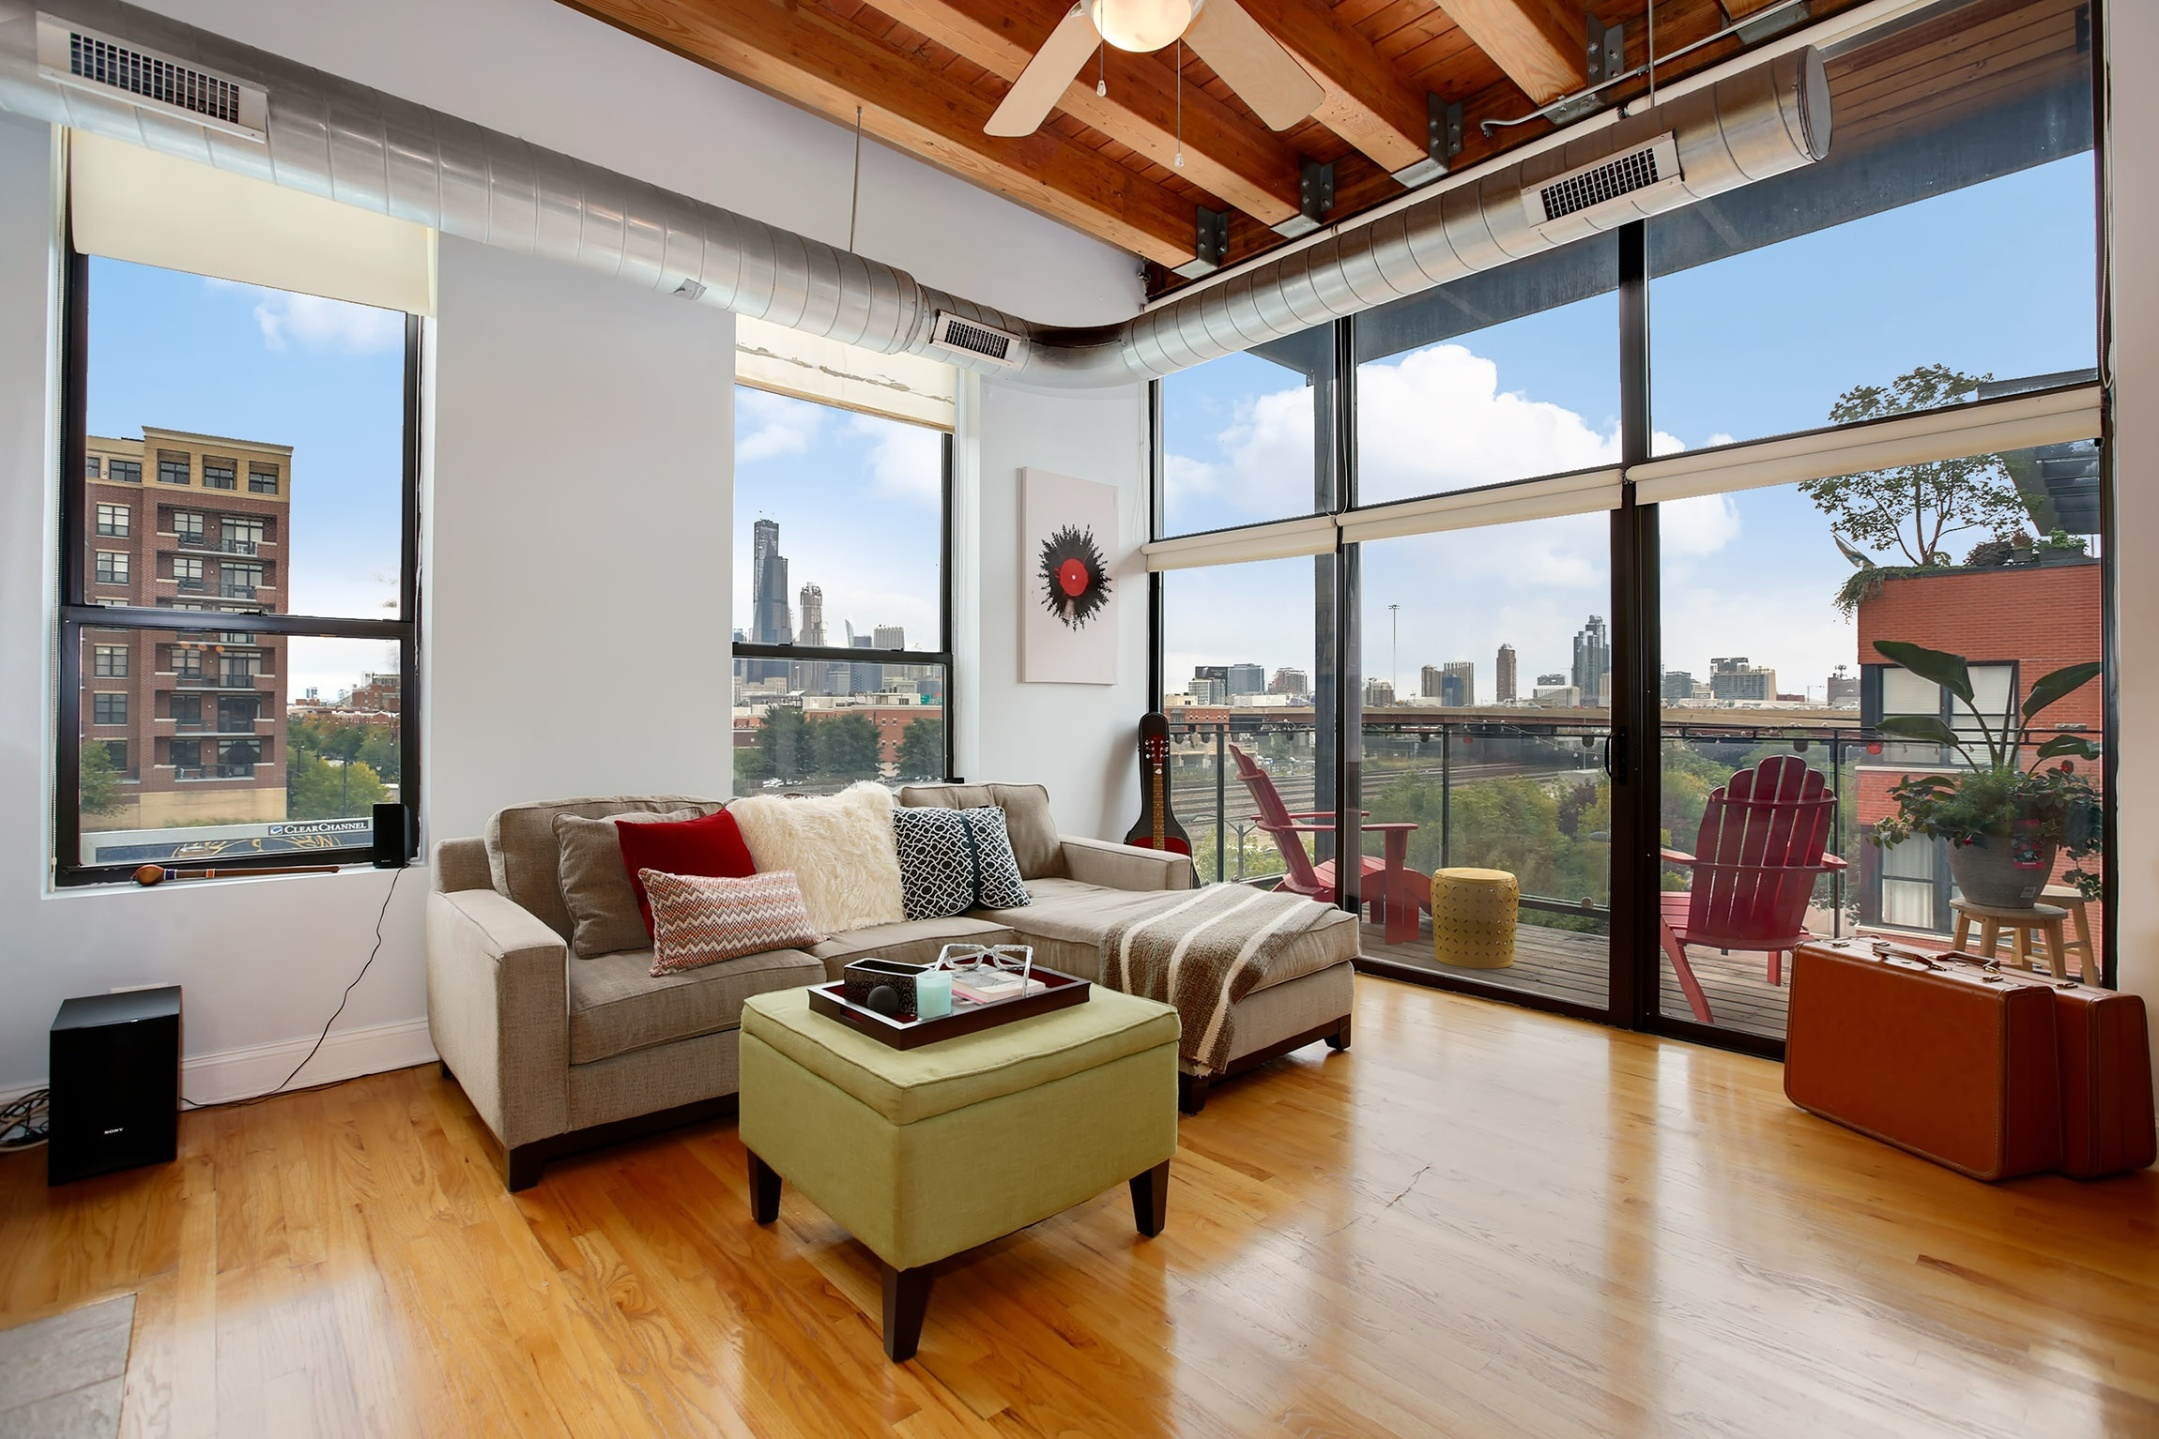 Bright Timber Loft In Pilsen Seeks $355K Amazing Design